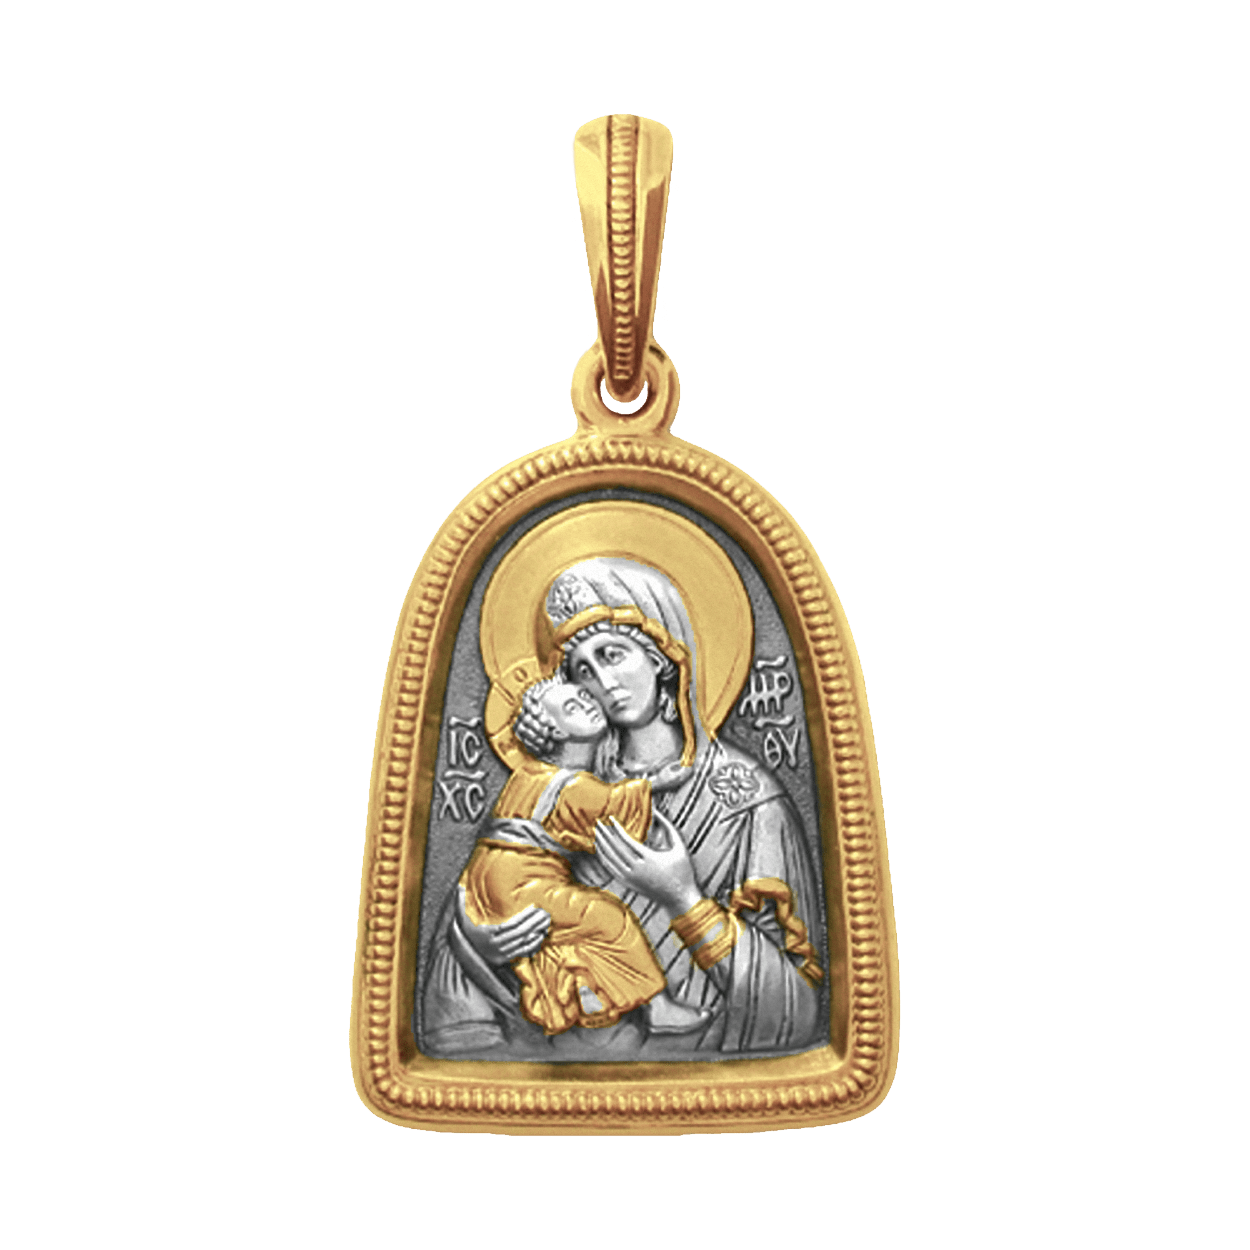 Russian-Orthodox-Icon-silver-medal-pendant-OUR-LADY-OF-VLADIMIR-Master-Jeweler-Fedorov